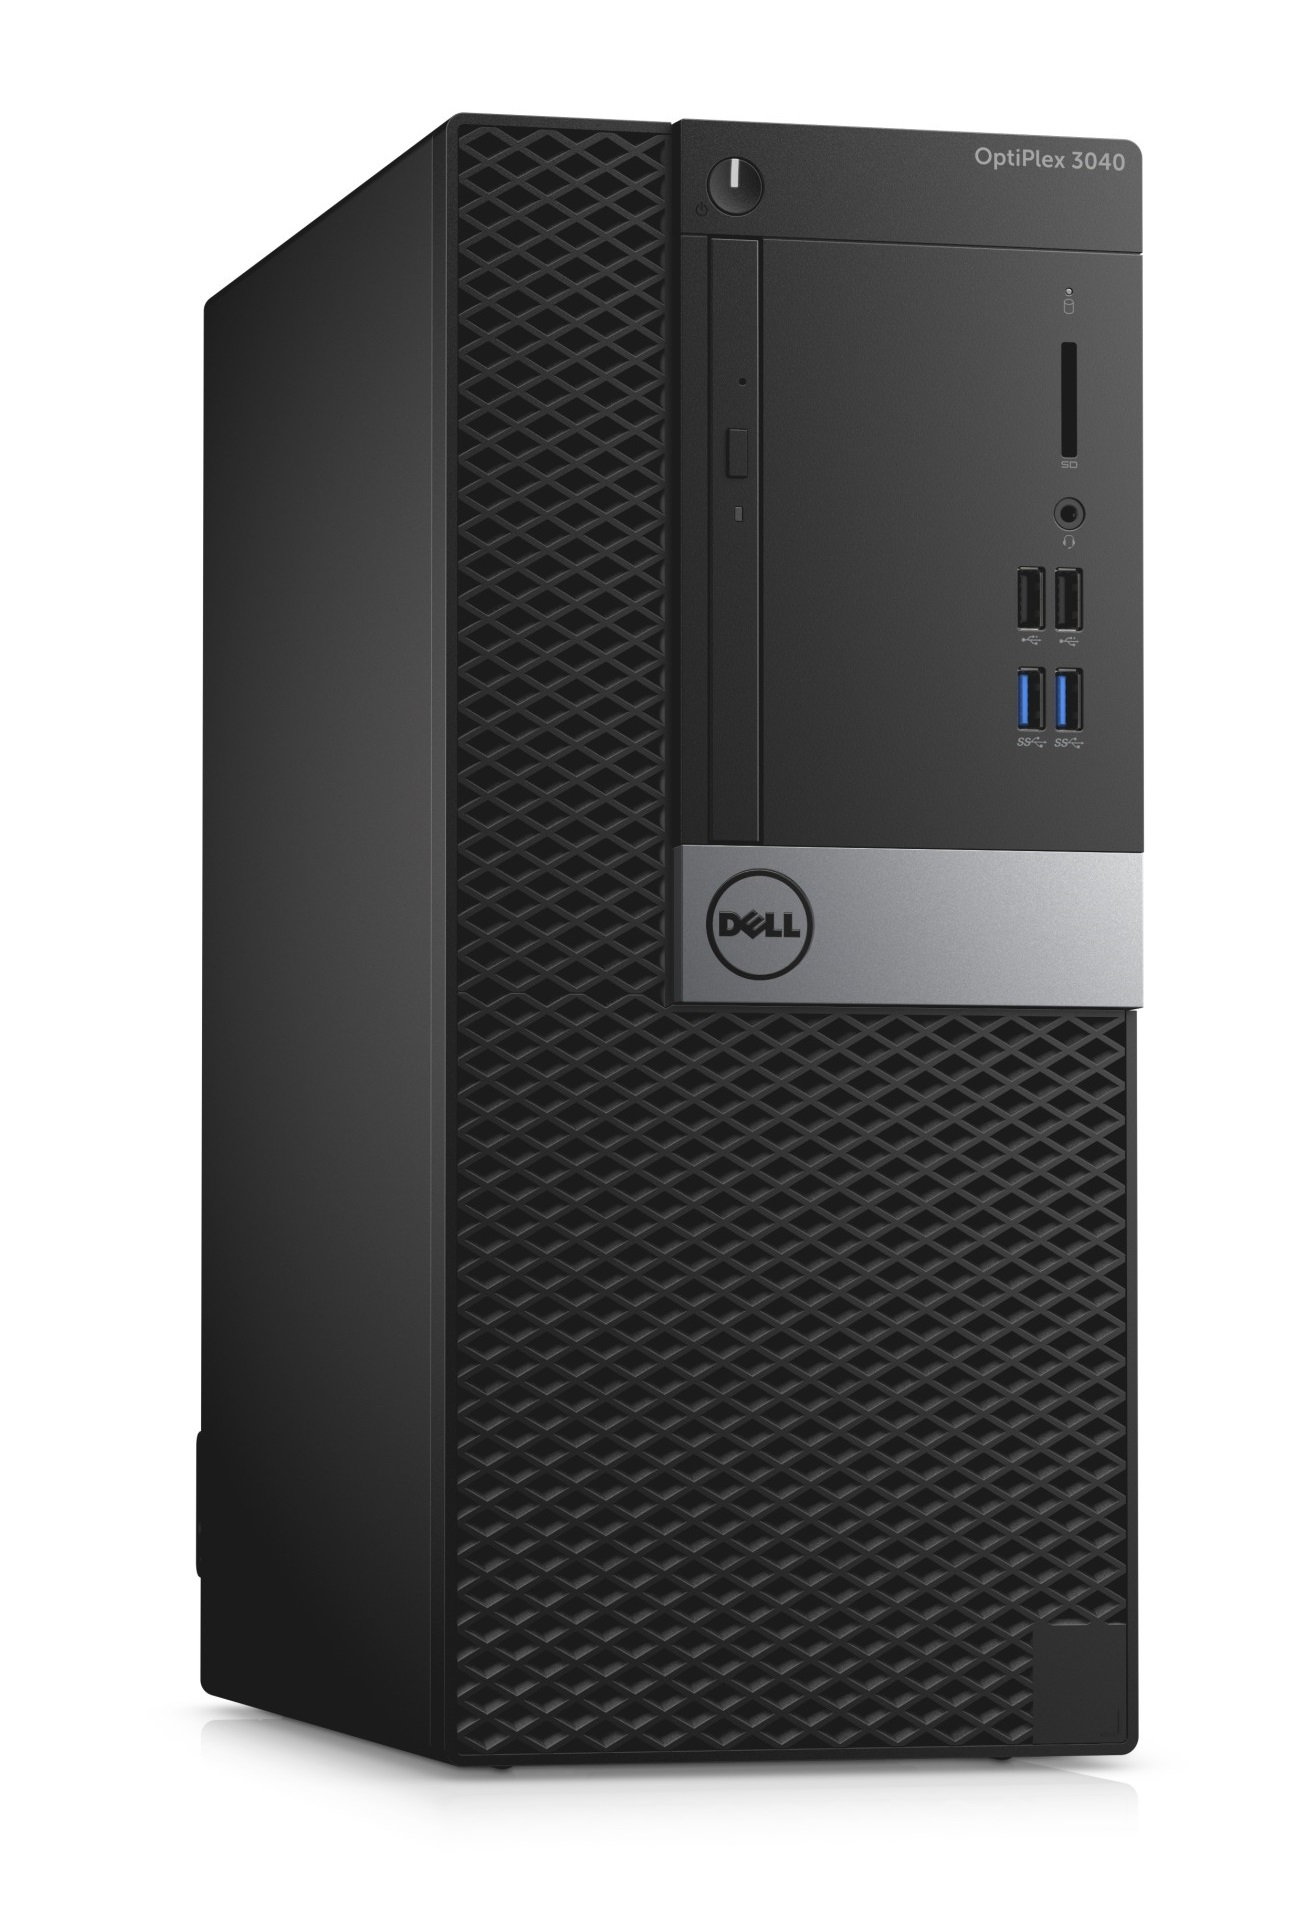 DELL OptiPlex MT 3040 Pentium G4400/4GB/500GB/Intel HD/Win7 PRO - Win 10 Pro 64bit/3Yr NBD